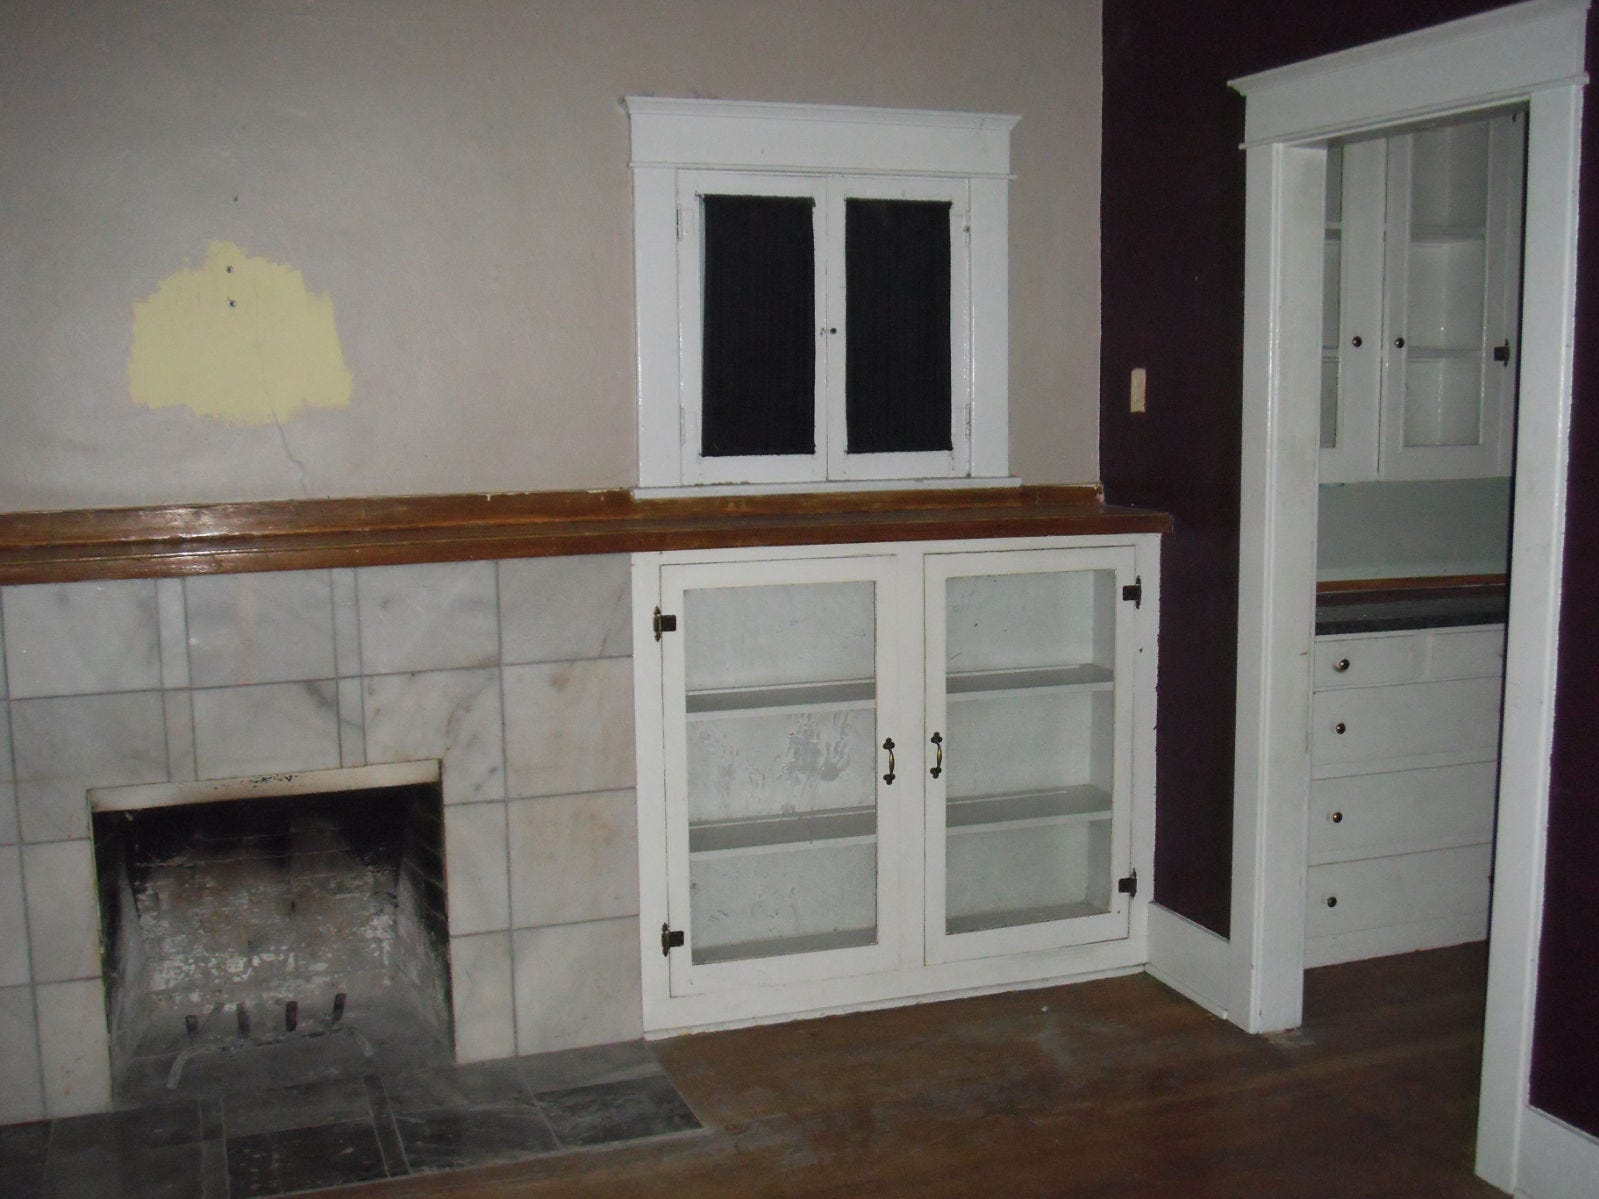 2010 picture of living room at purchase.